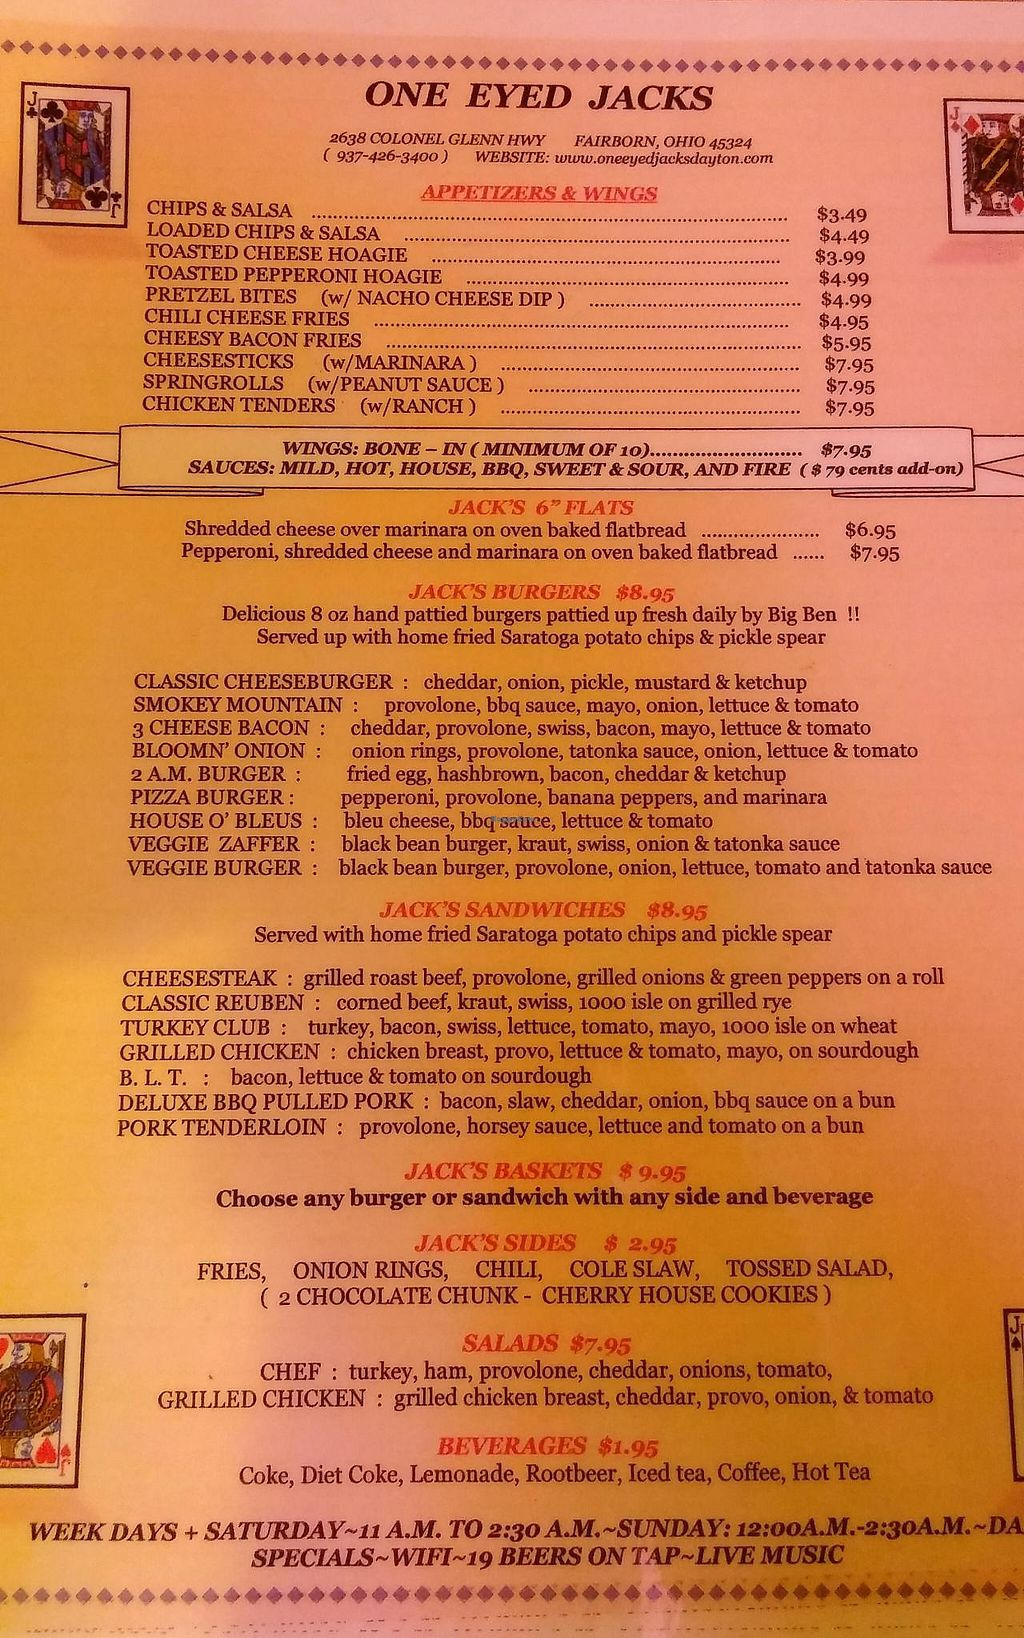 "Photo of One Eyed Jacks  by <a href=""/members/profile/Dpelkeyuscg"">Dpelkeyuscg</a> <br/>Photo of menu as of 8dec2014 only one page.  <br/> December 8, 2014  - <a href='/contact/abuse/image/38686/216922'>Report</a>"